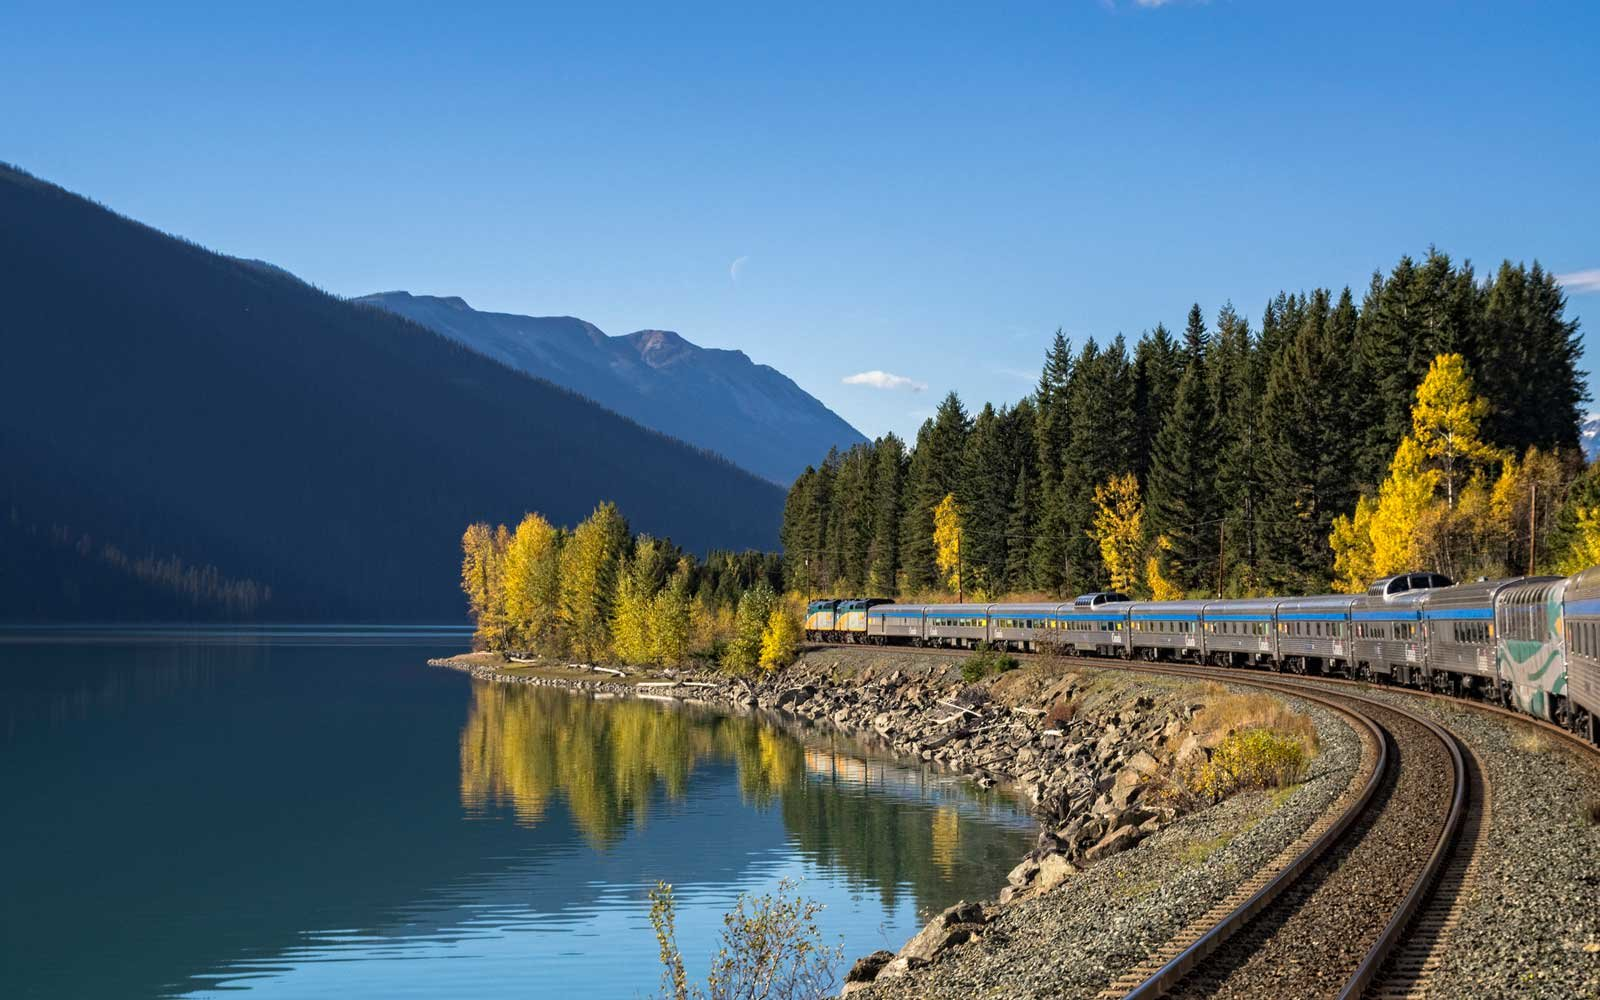 The Great Western Way on the VIA Rail: Canada